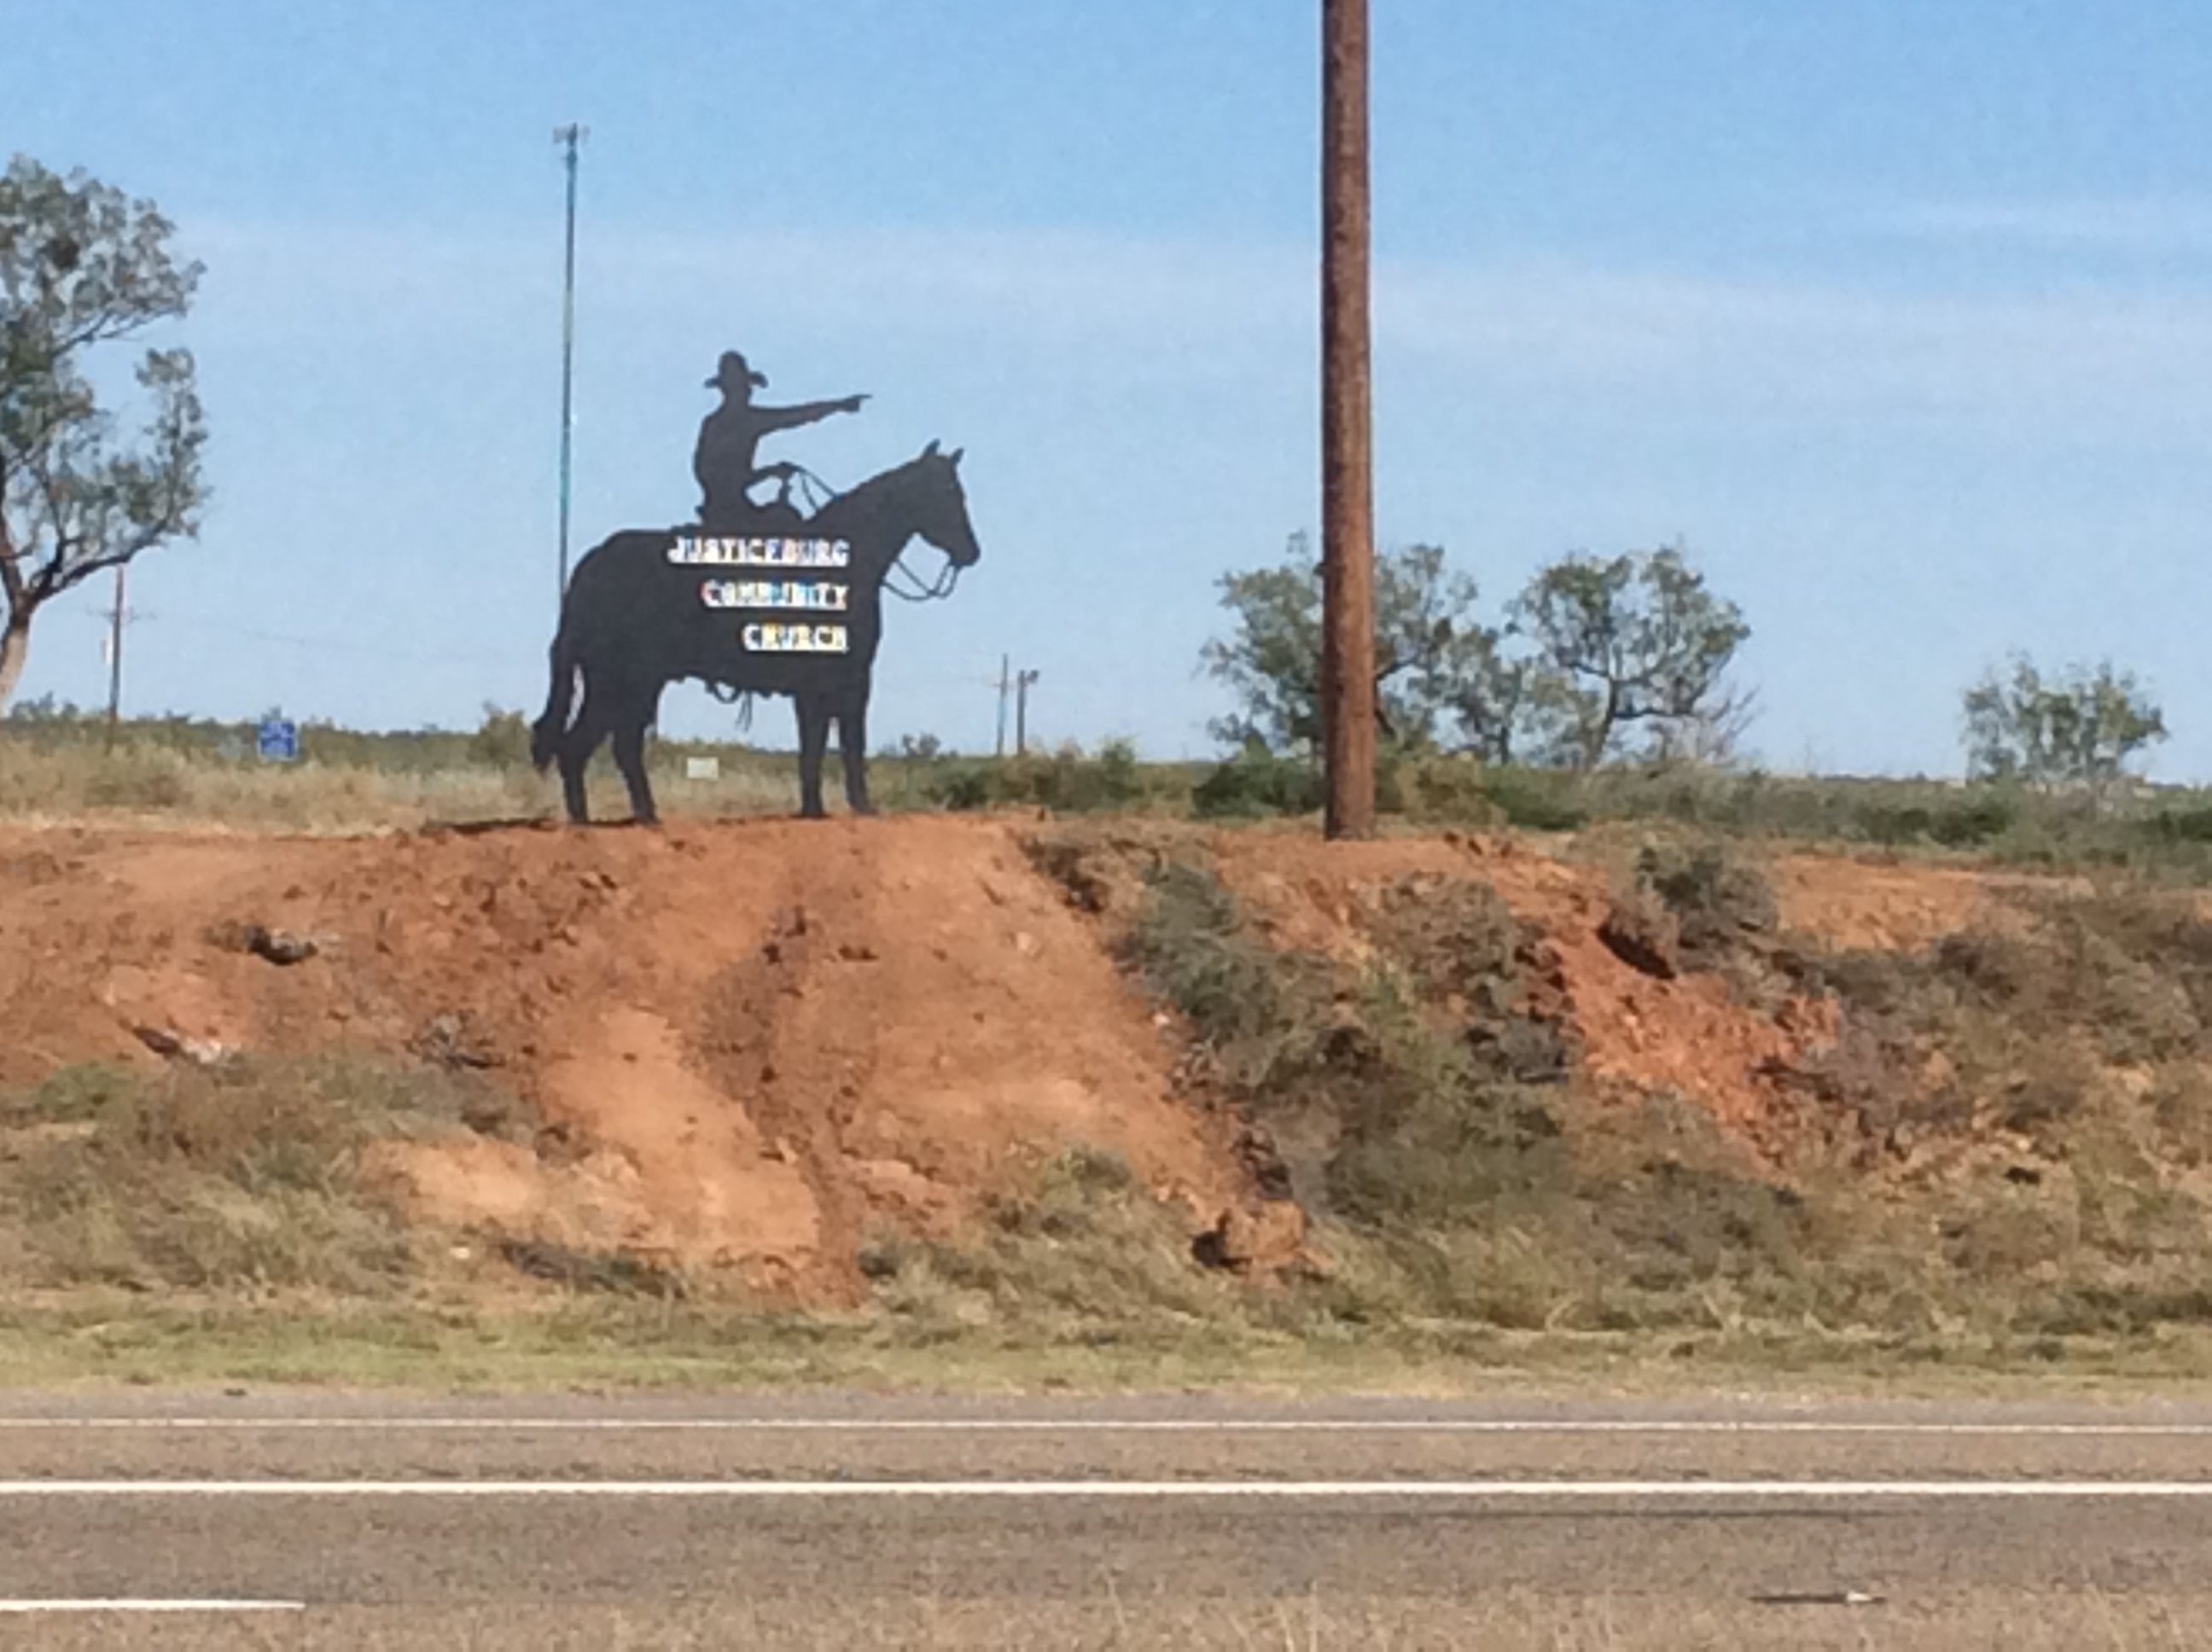 The silhouette is at a new locations. An Angel moved it to East of FM 2458 & US 84!